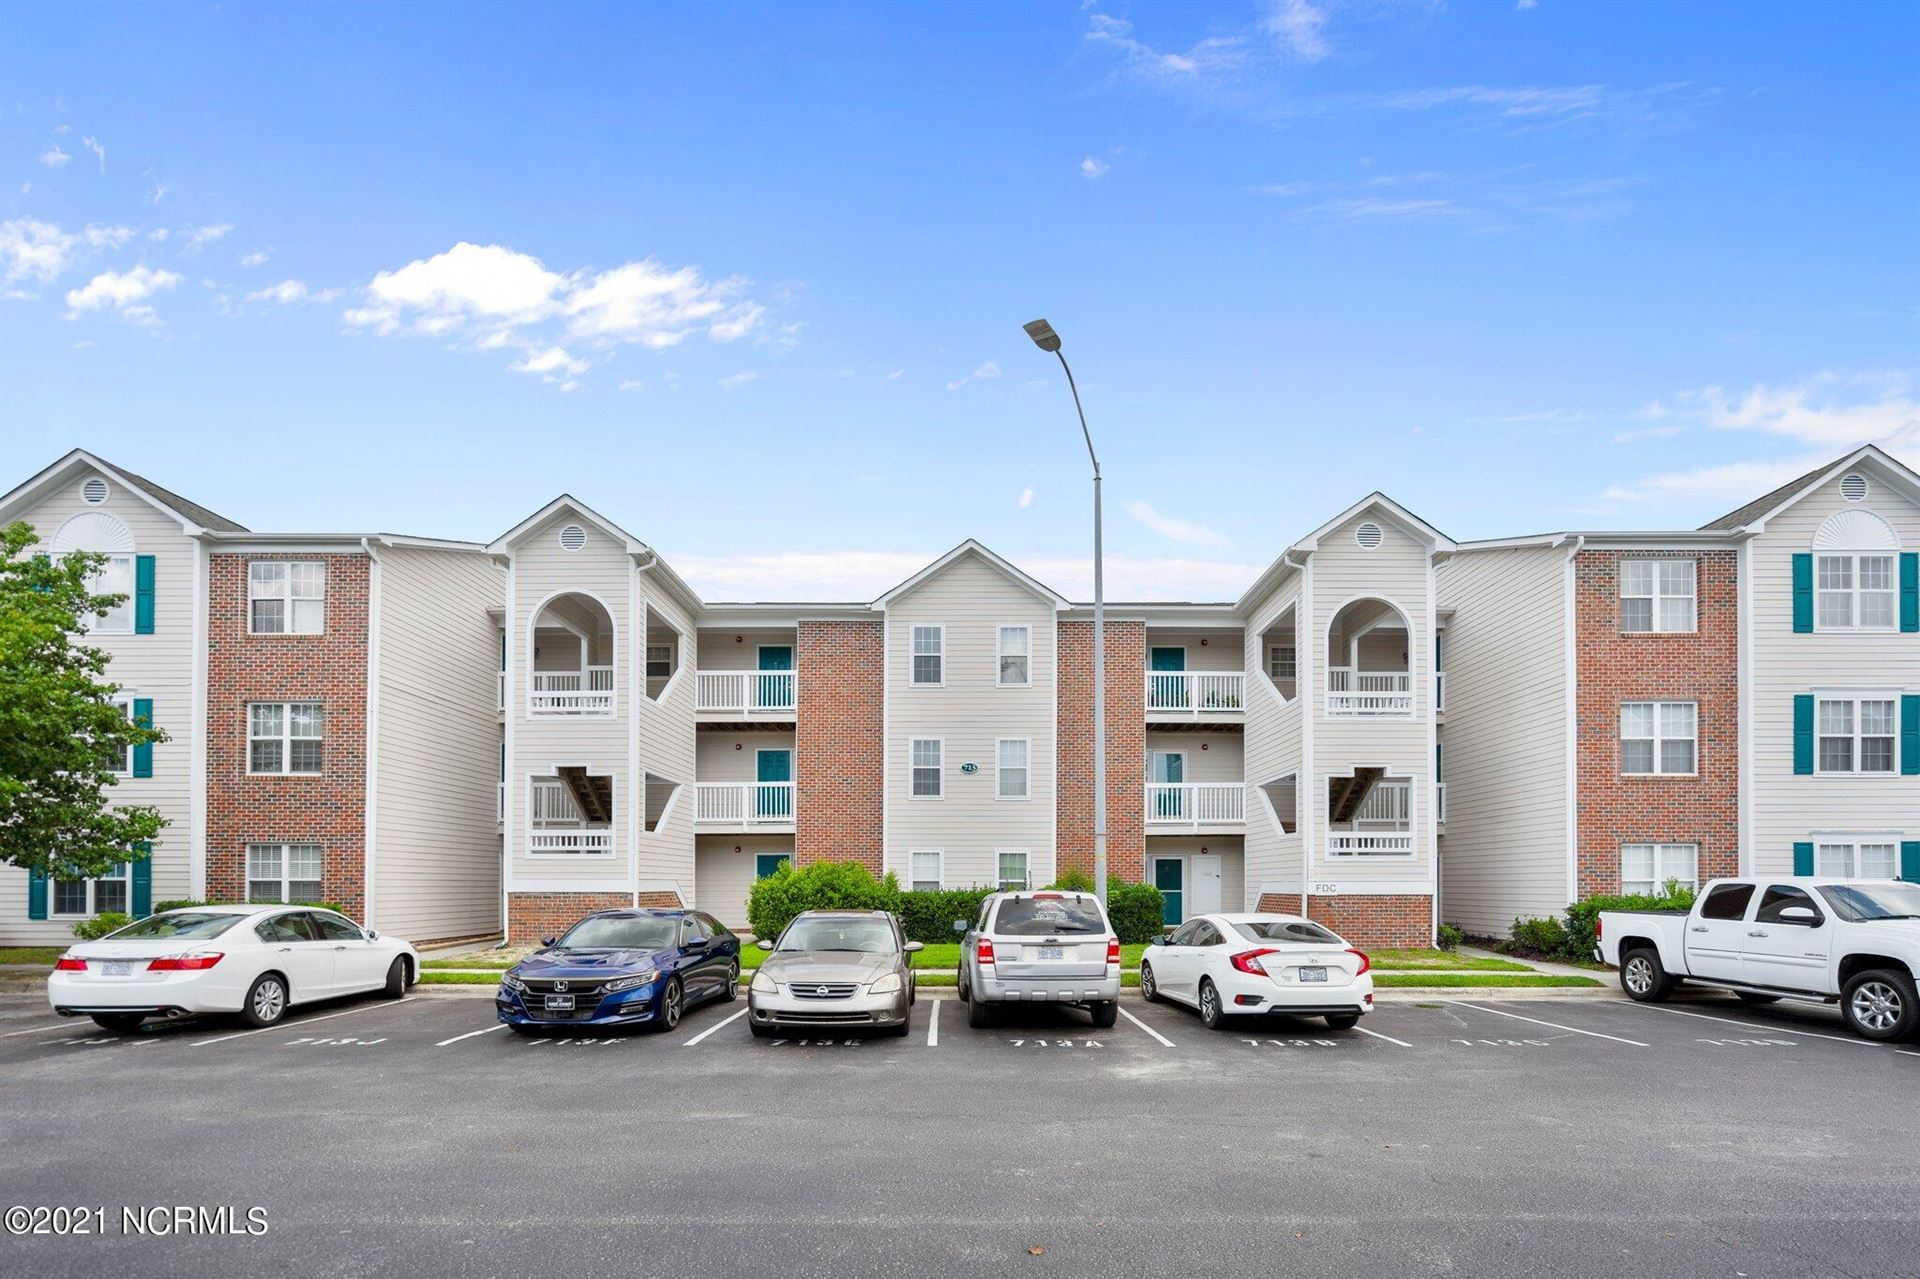 Photo of 713 Clearwater Court #713 L, Wilmington, NC 28405 (MLS # 100288172)